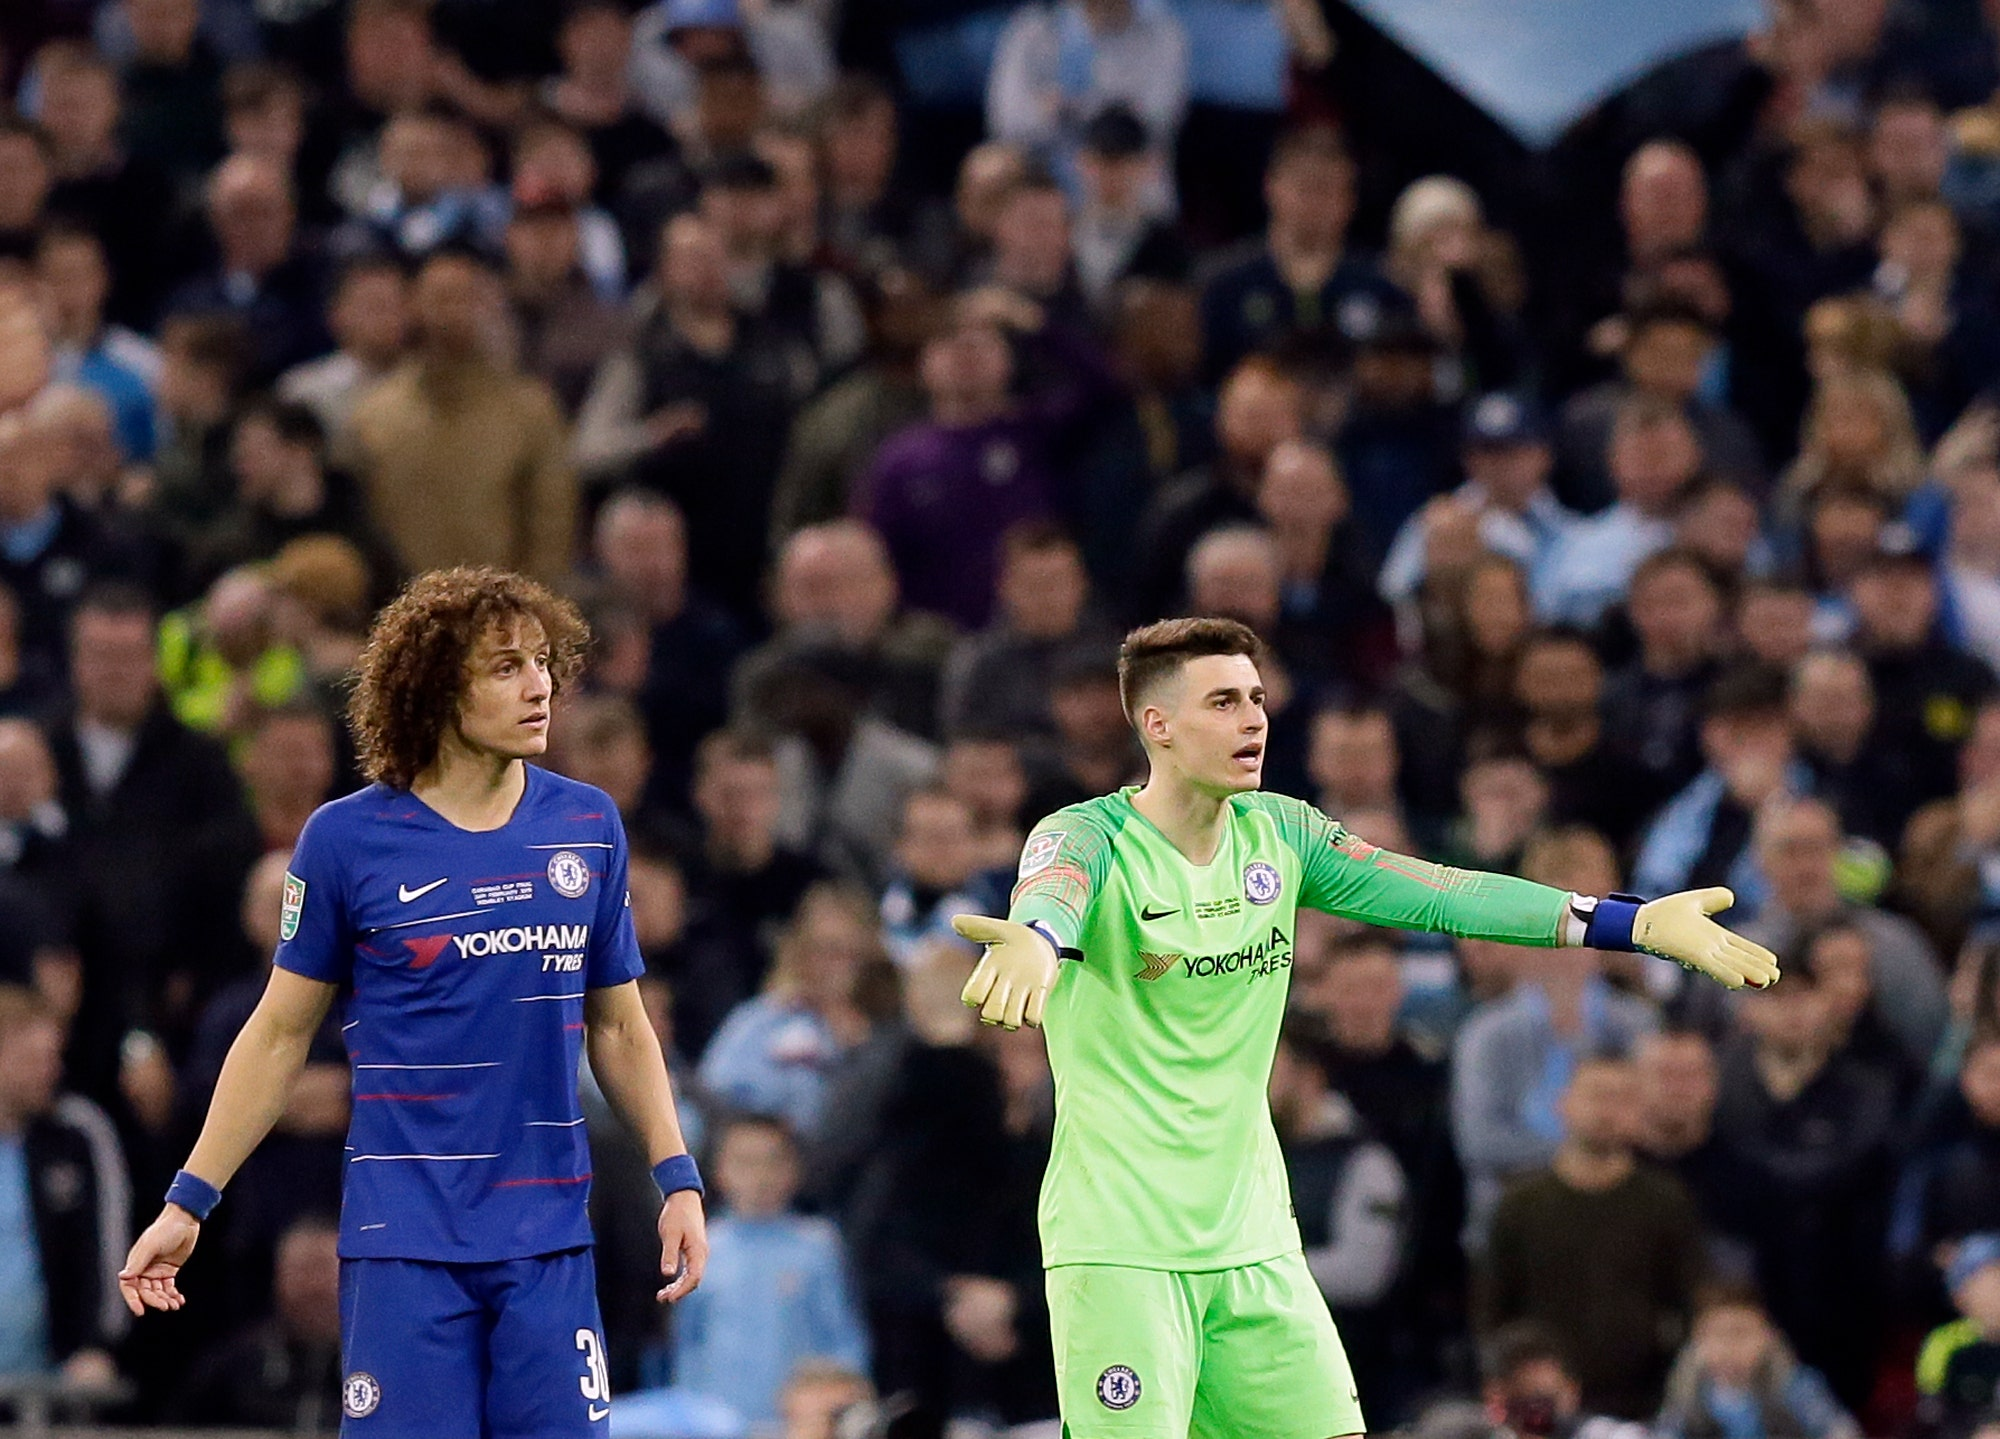 Chelsea goalie apologizes for refusing to leave field   FOX Sports